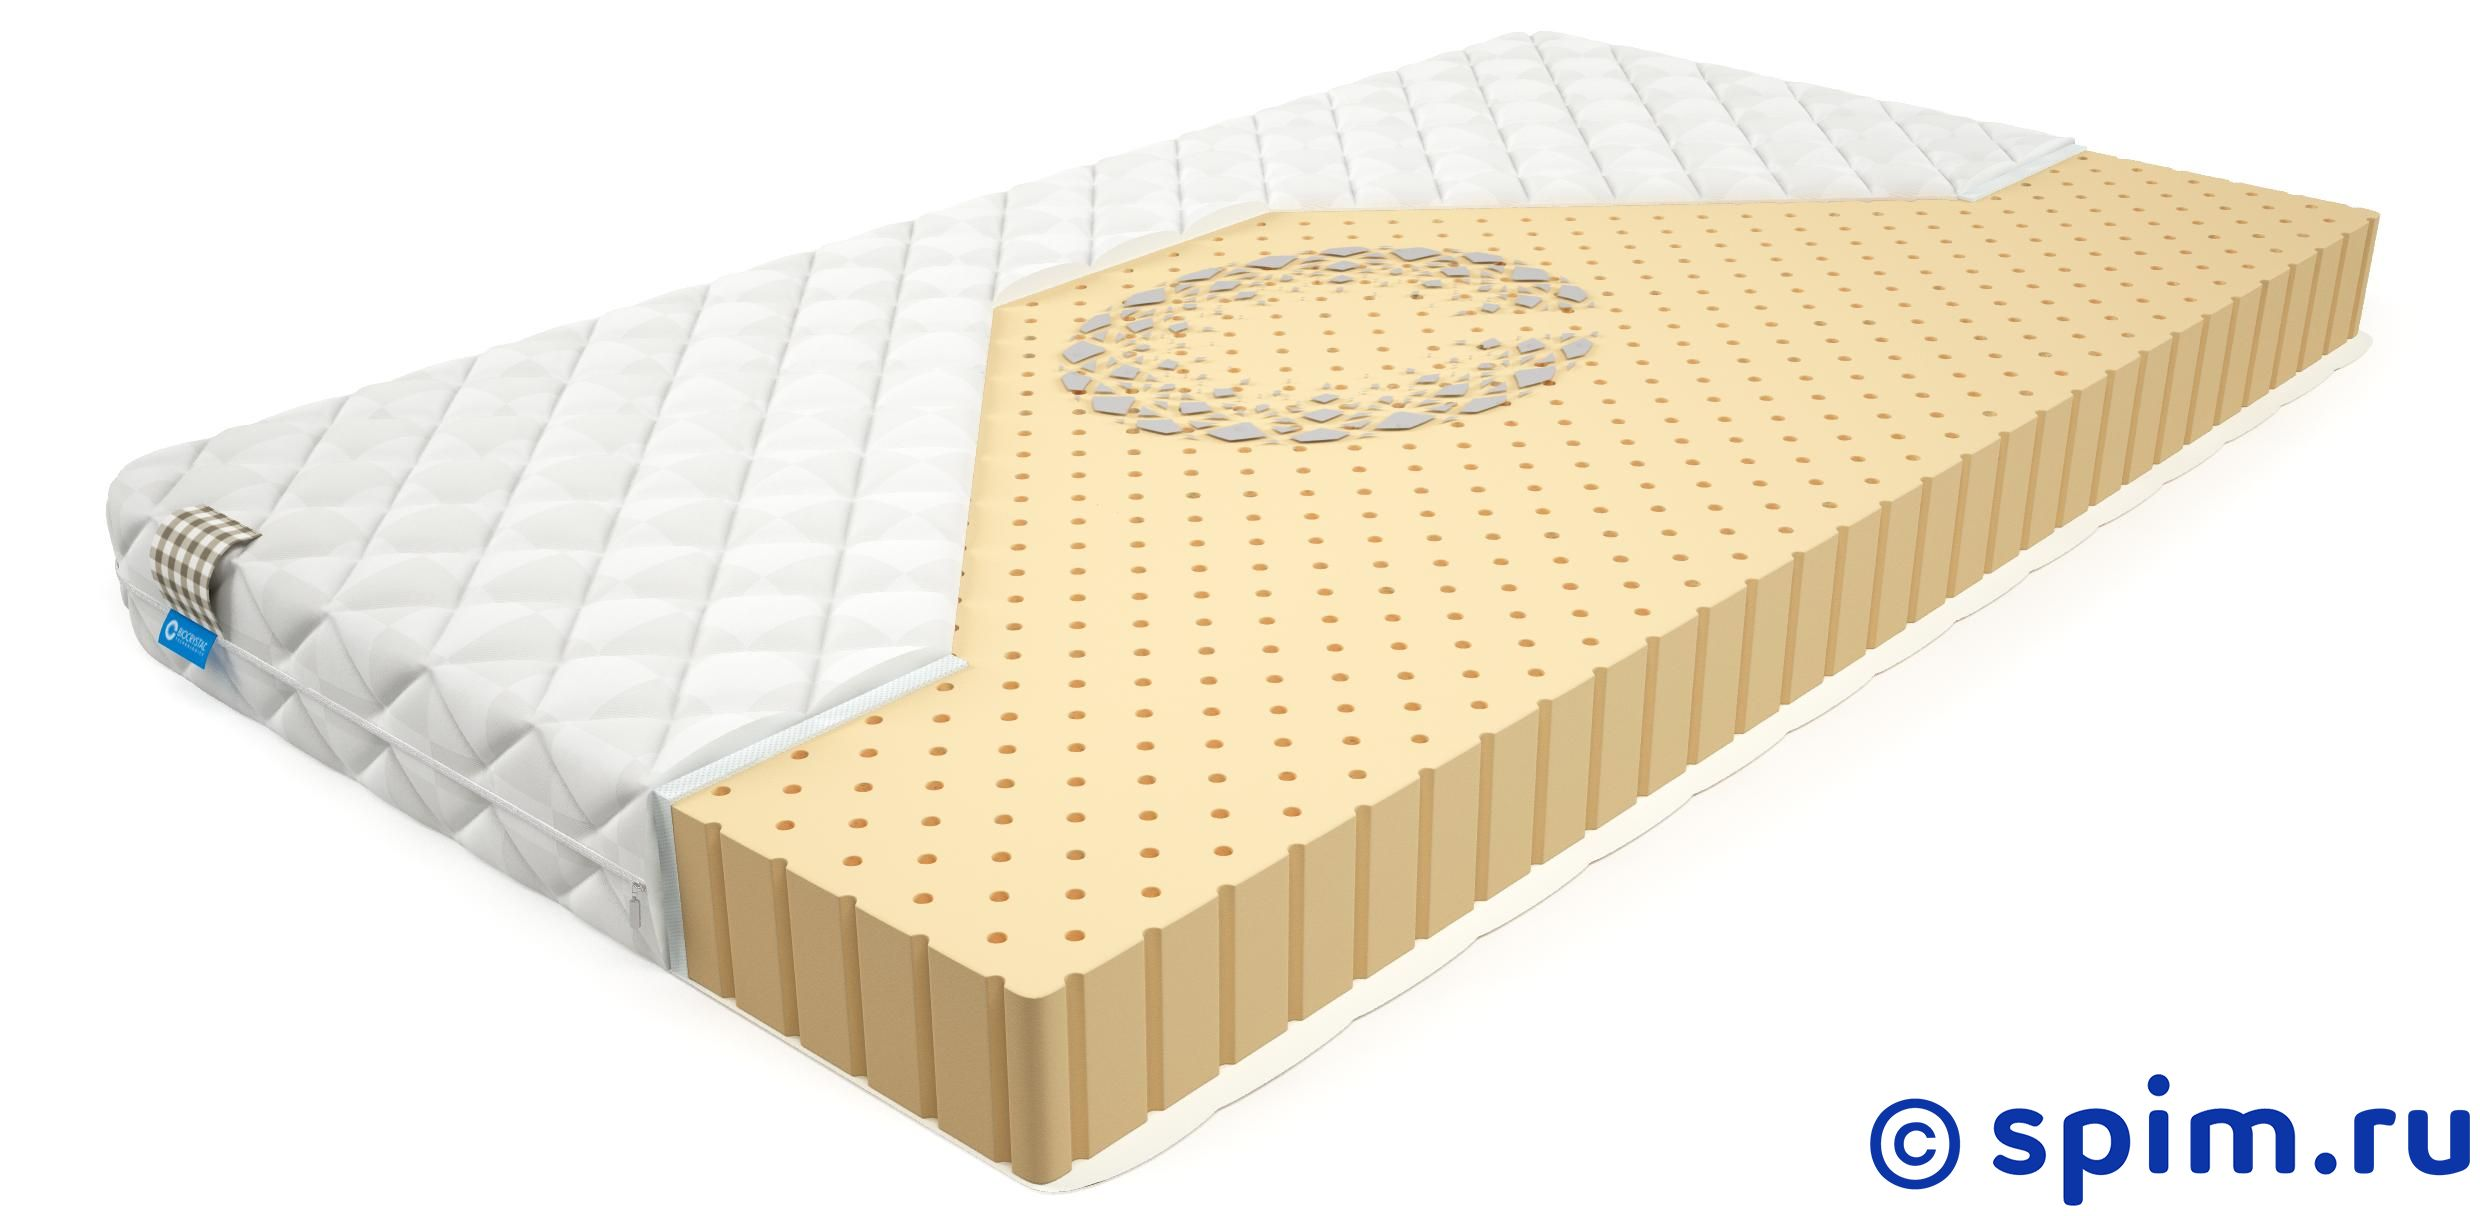 Матрас Mr.Mattress Foxton L 180х200 см  - Купить